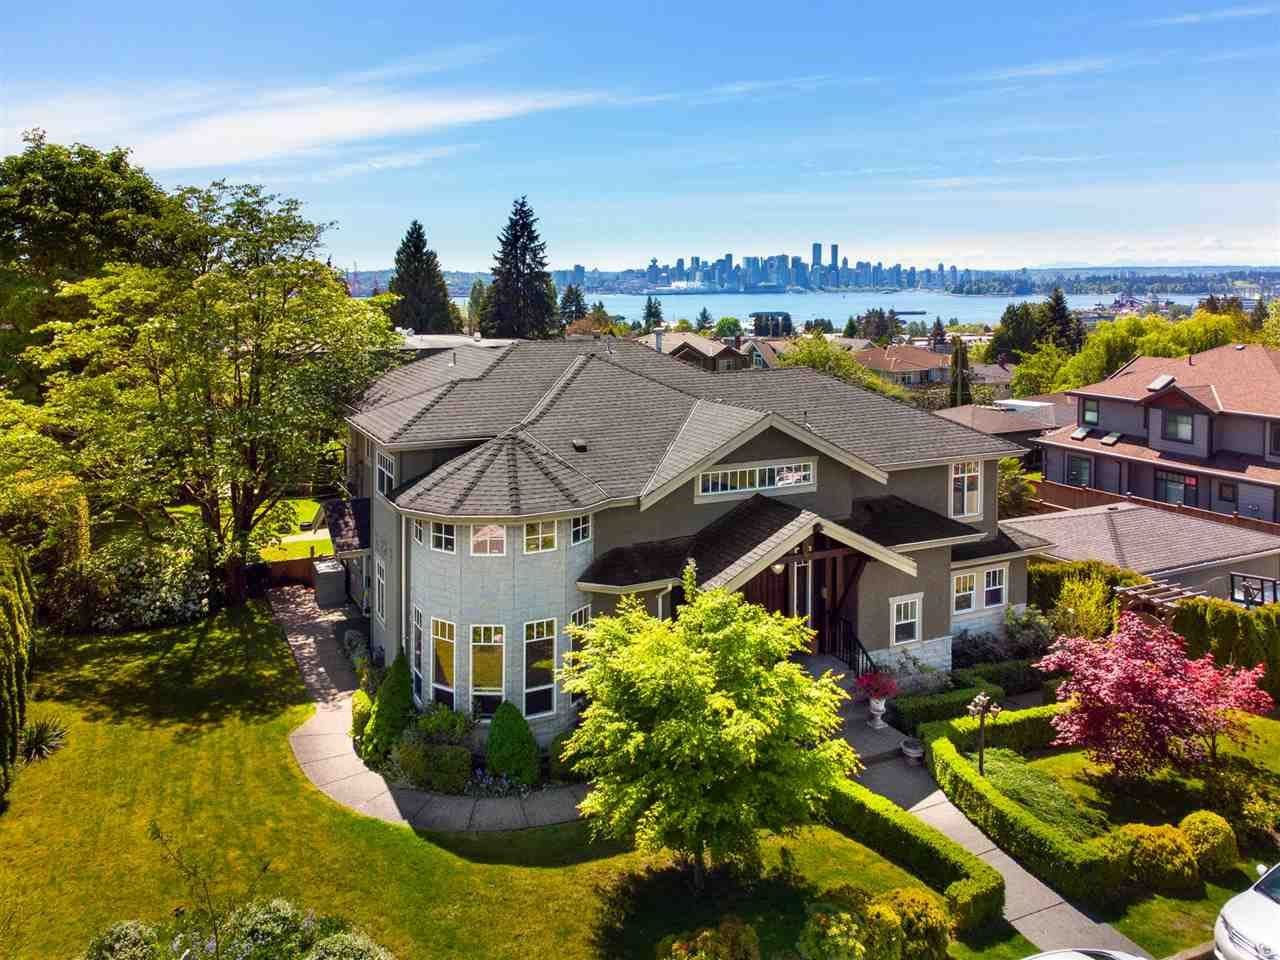 Photo of 407 W 15TH STREET, North Vancouver, BC V7M 1S7 (MLS # R2580682)